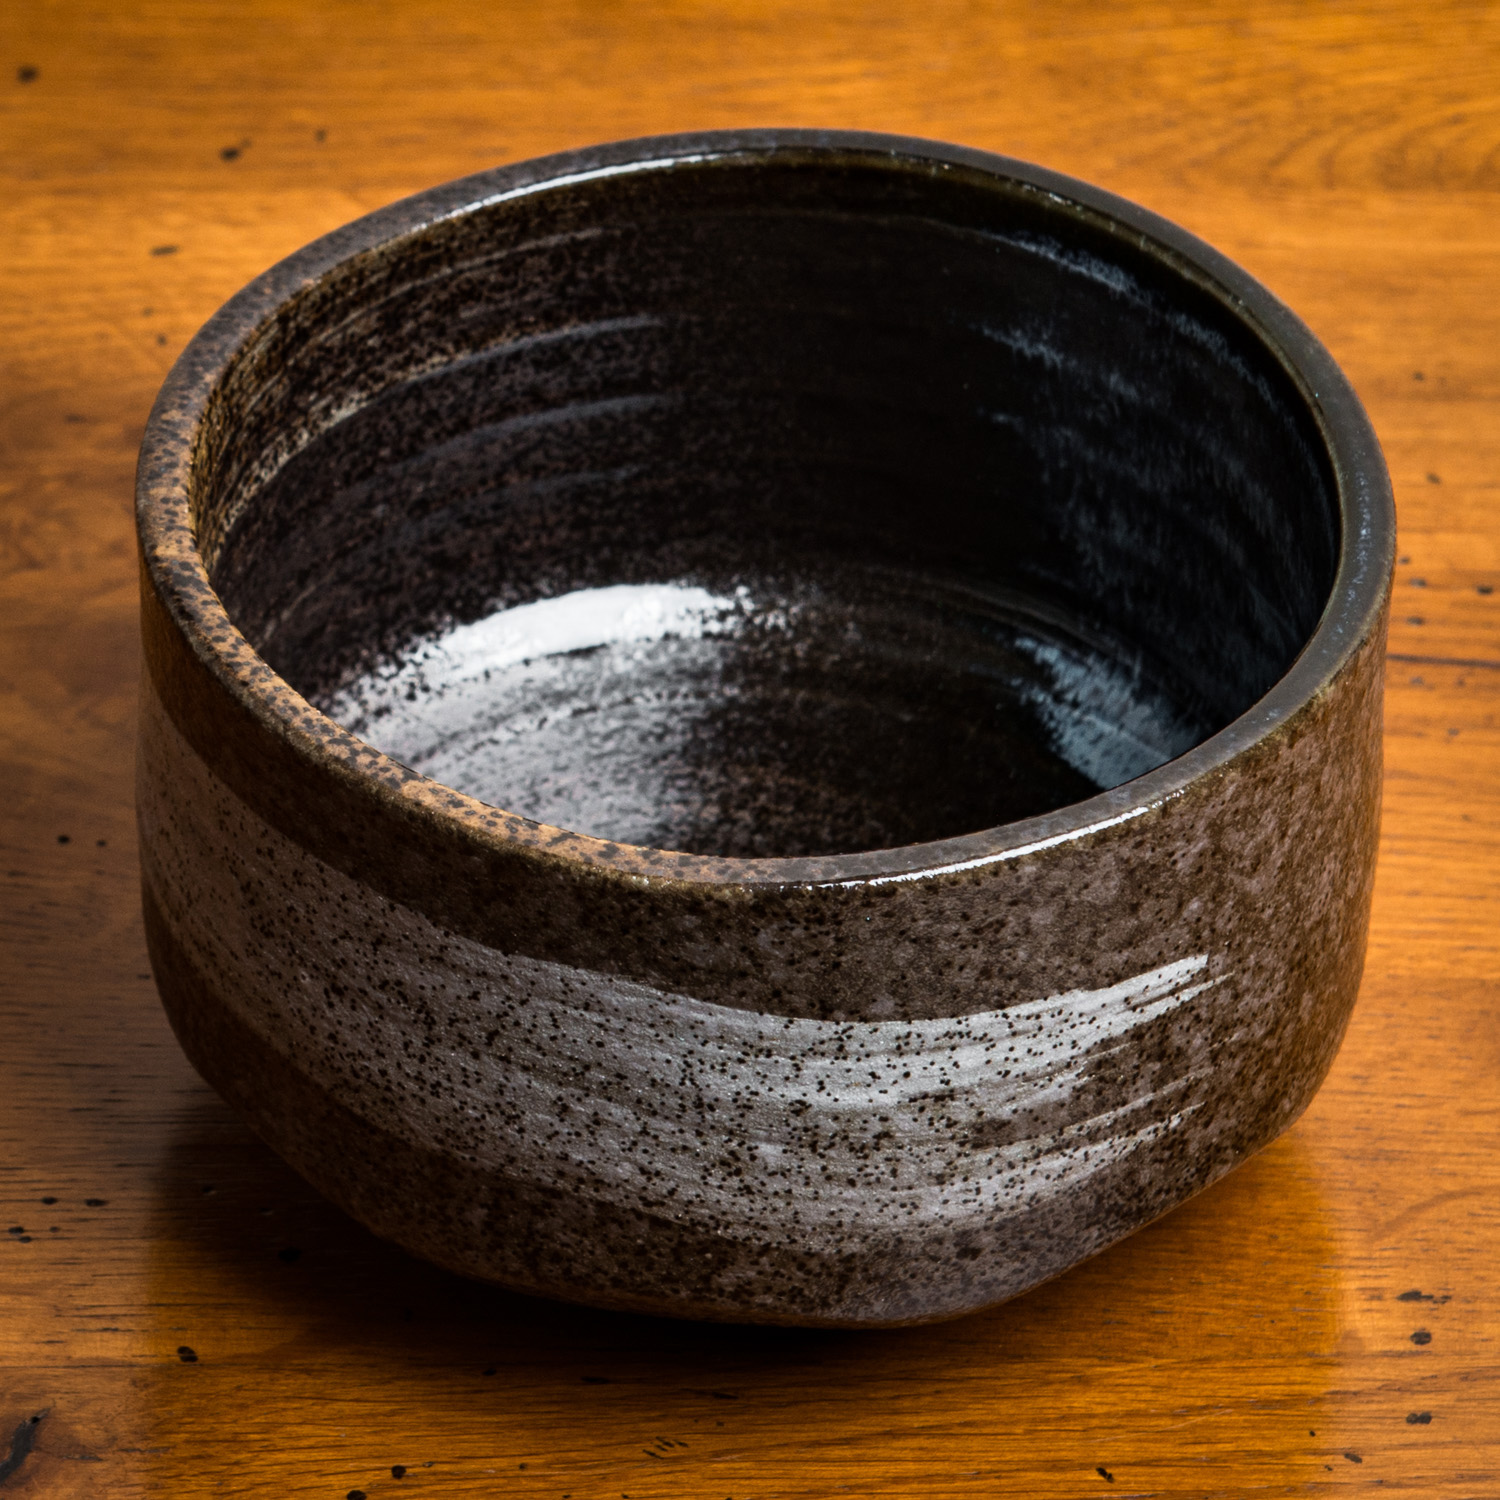 Sapporo Traditional Japanese Tea Cup